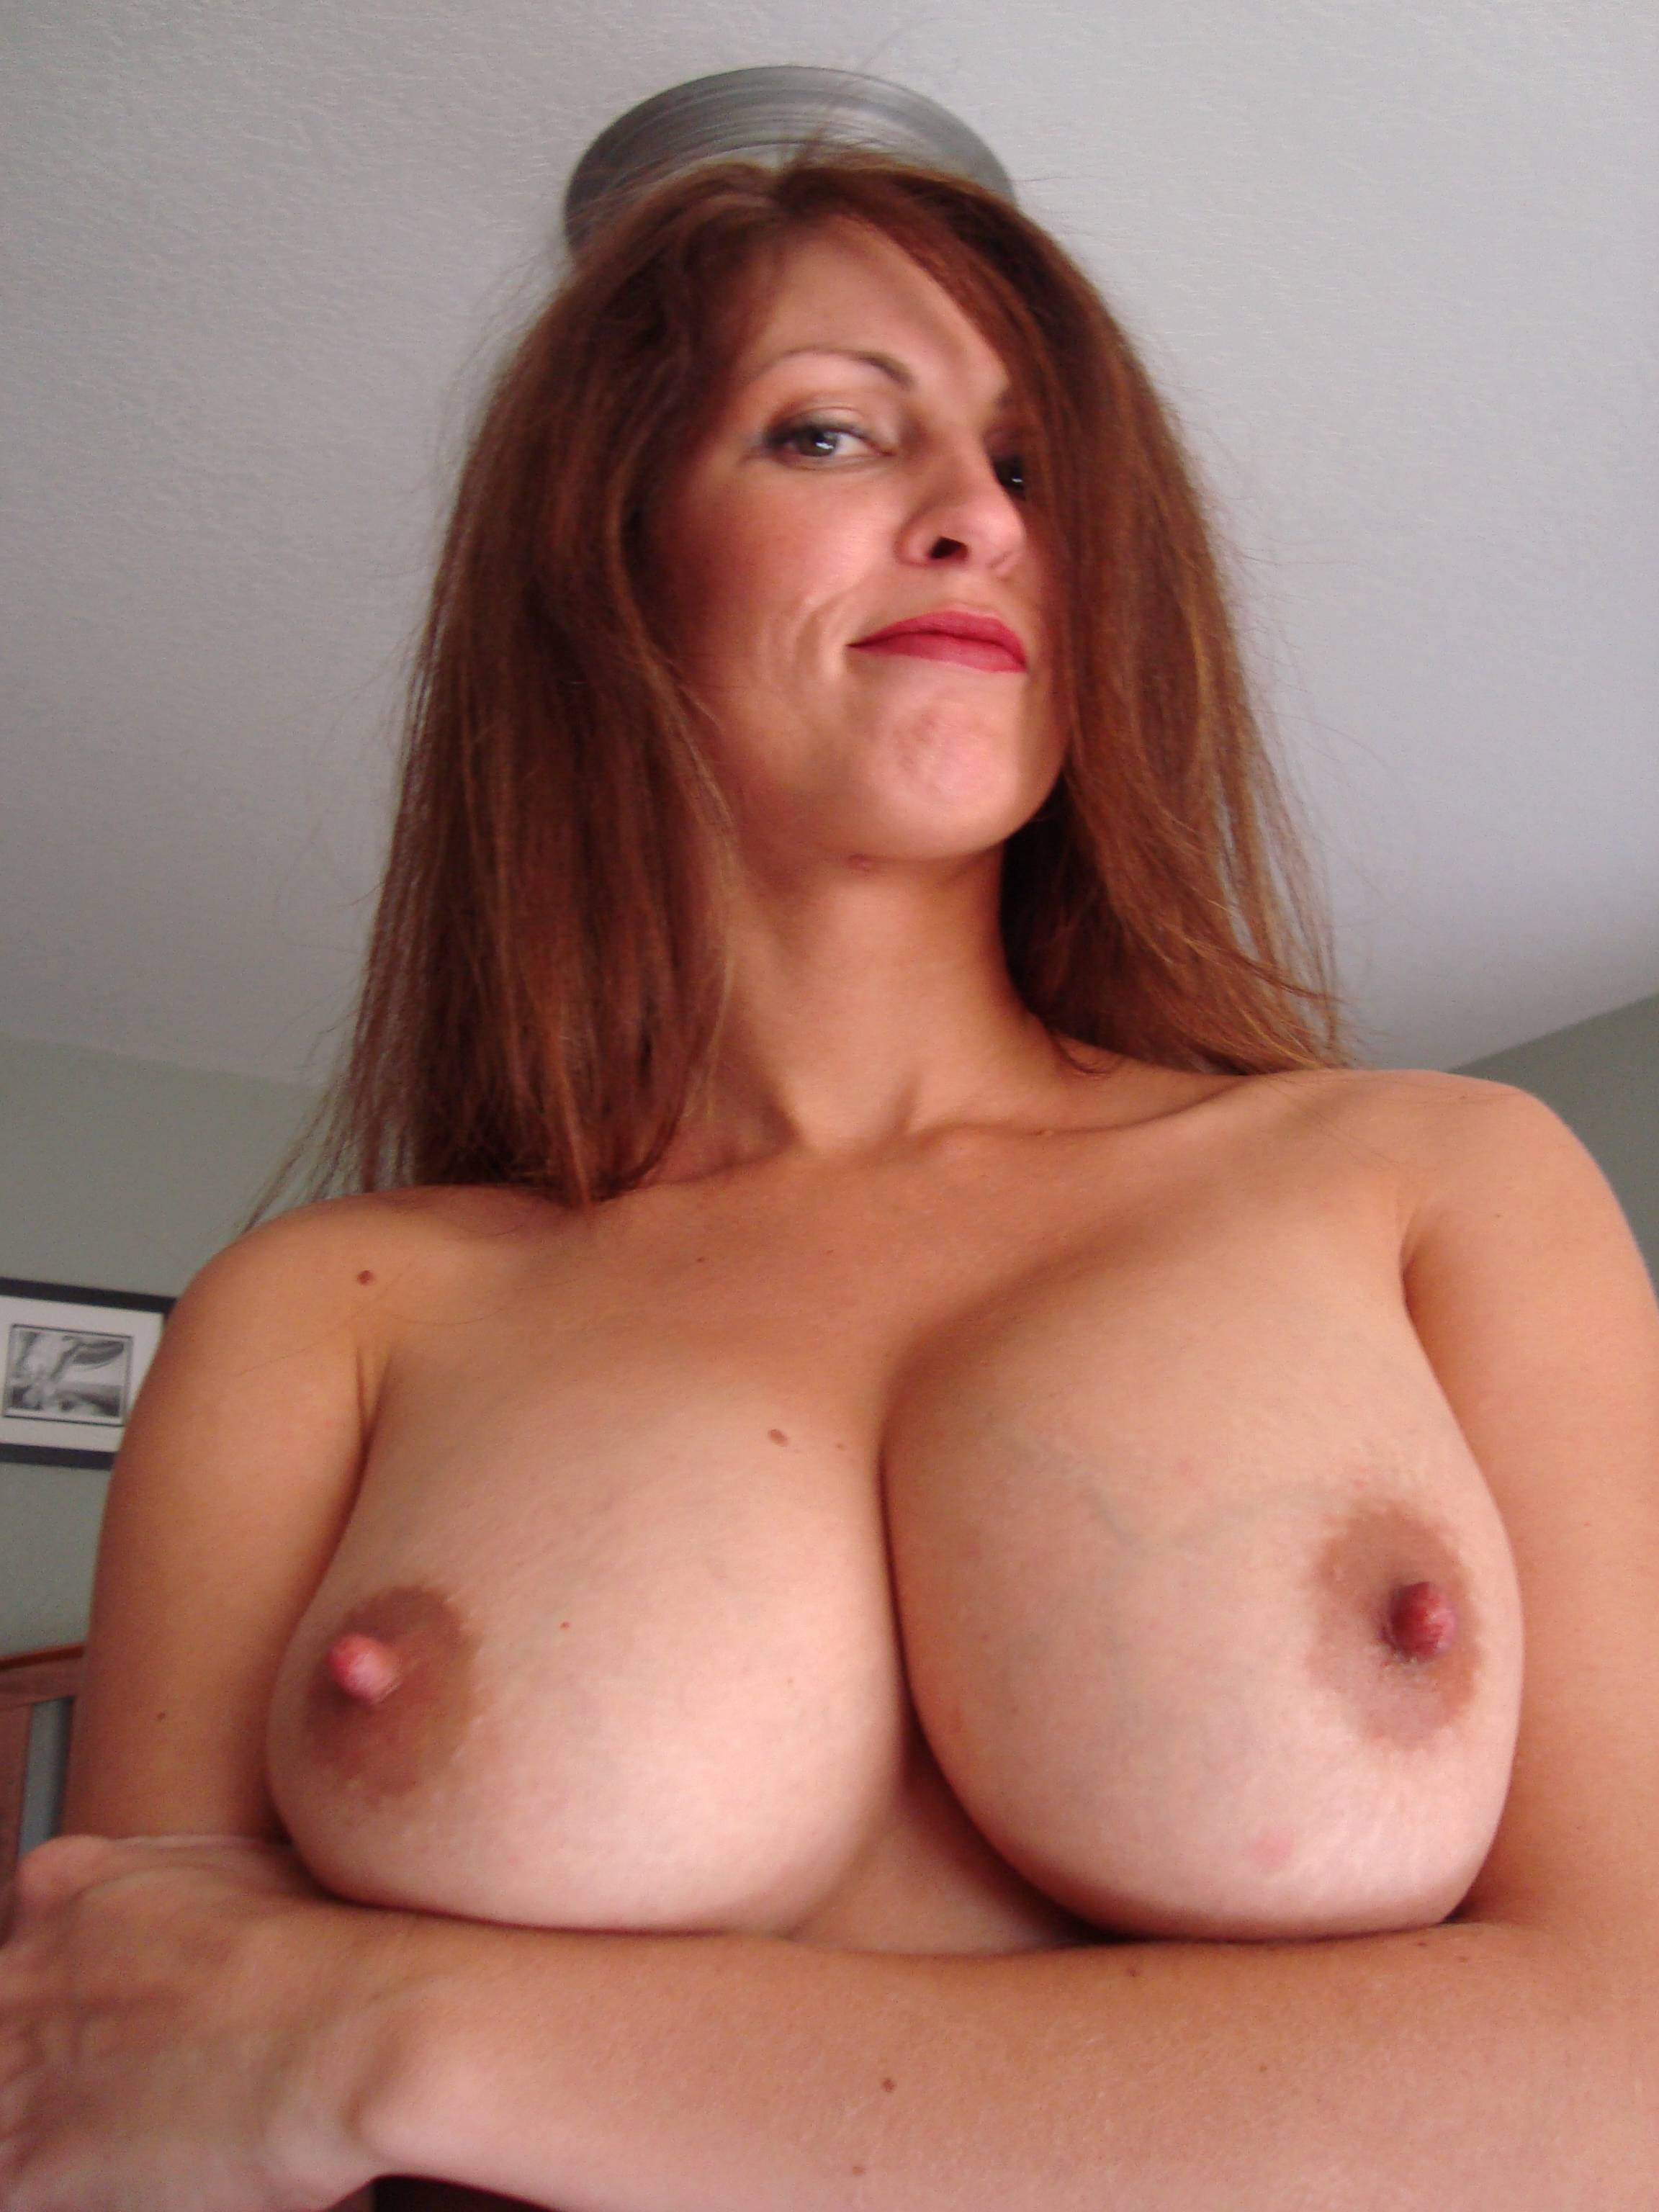 Big tits on older women